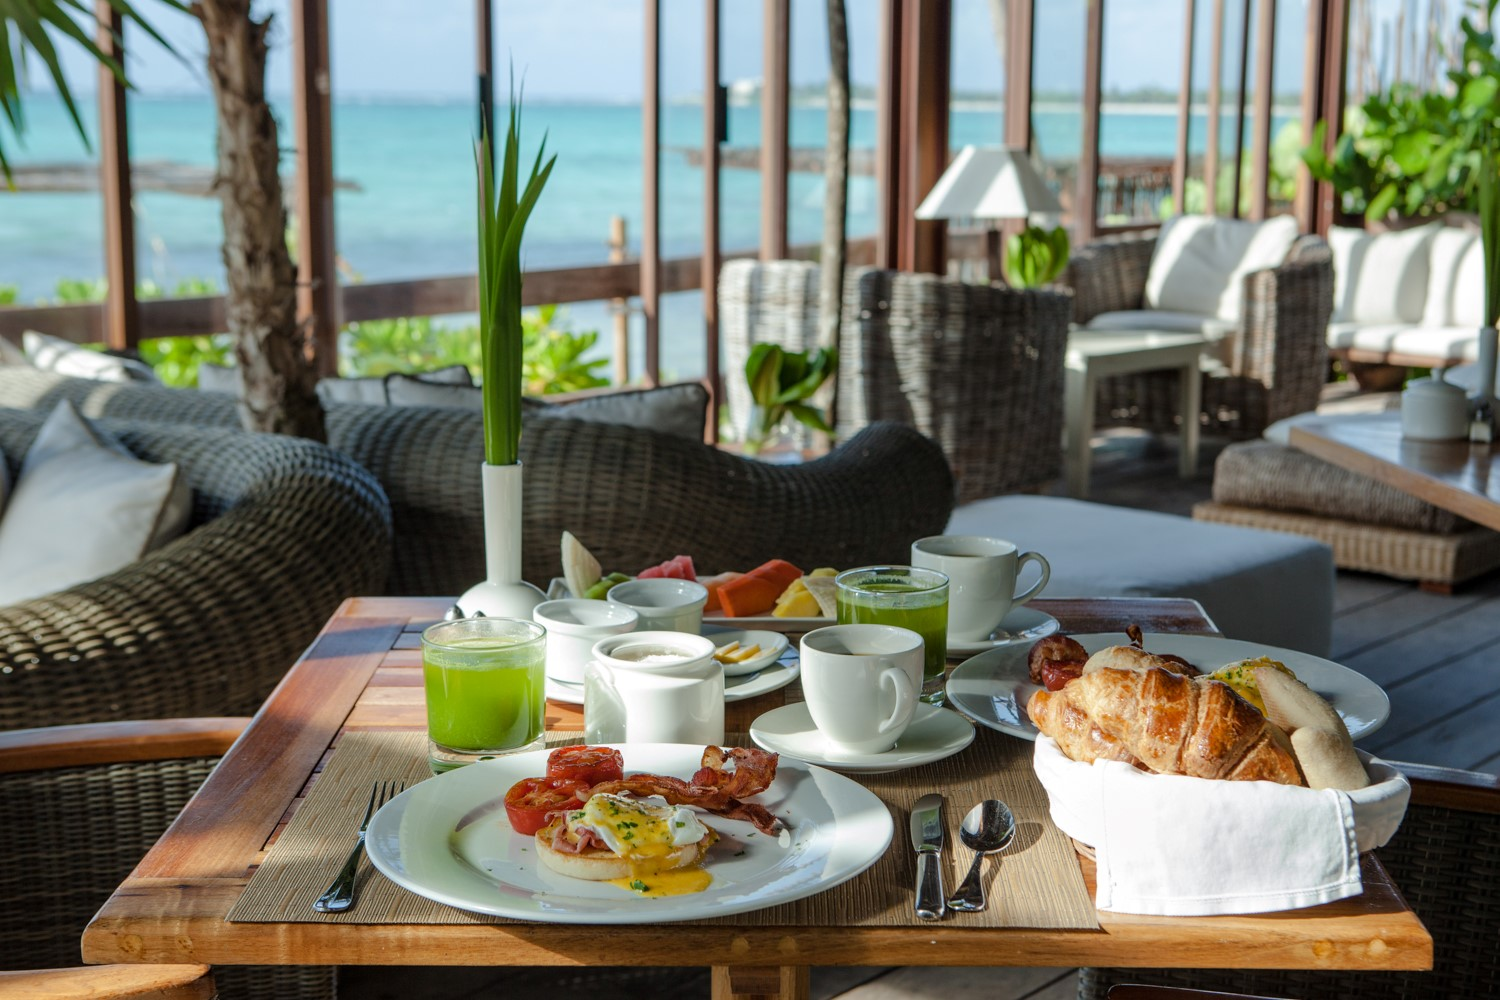 Discover the natural breakfast of a luxurious boutique hotel in Soliman Bay!